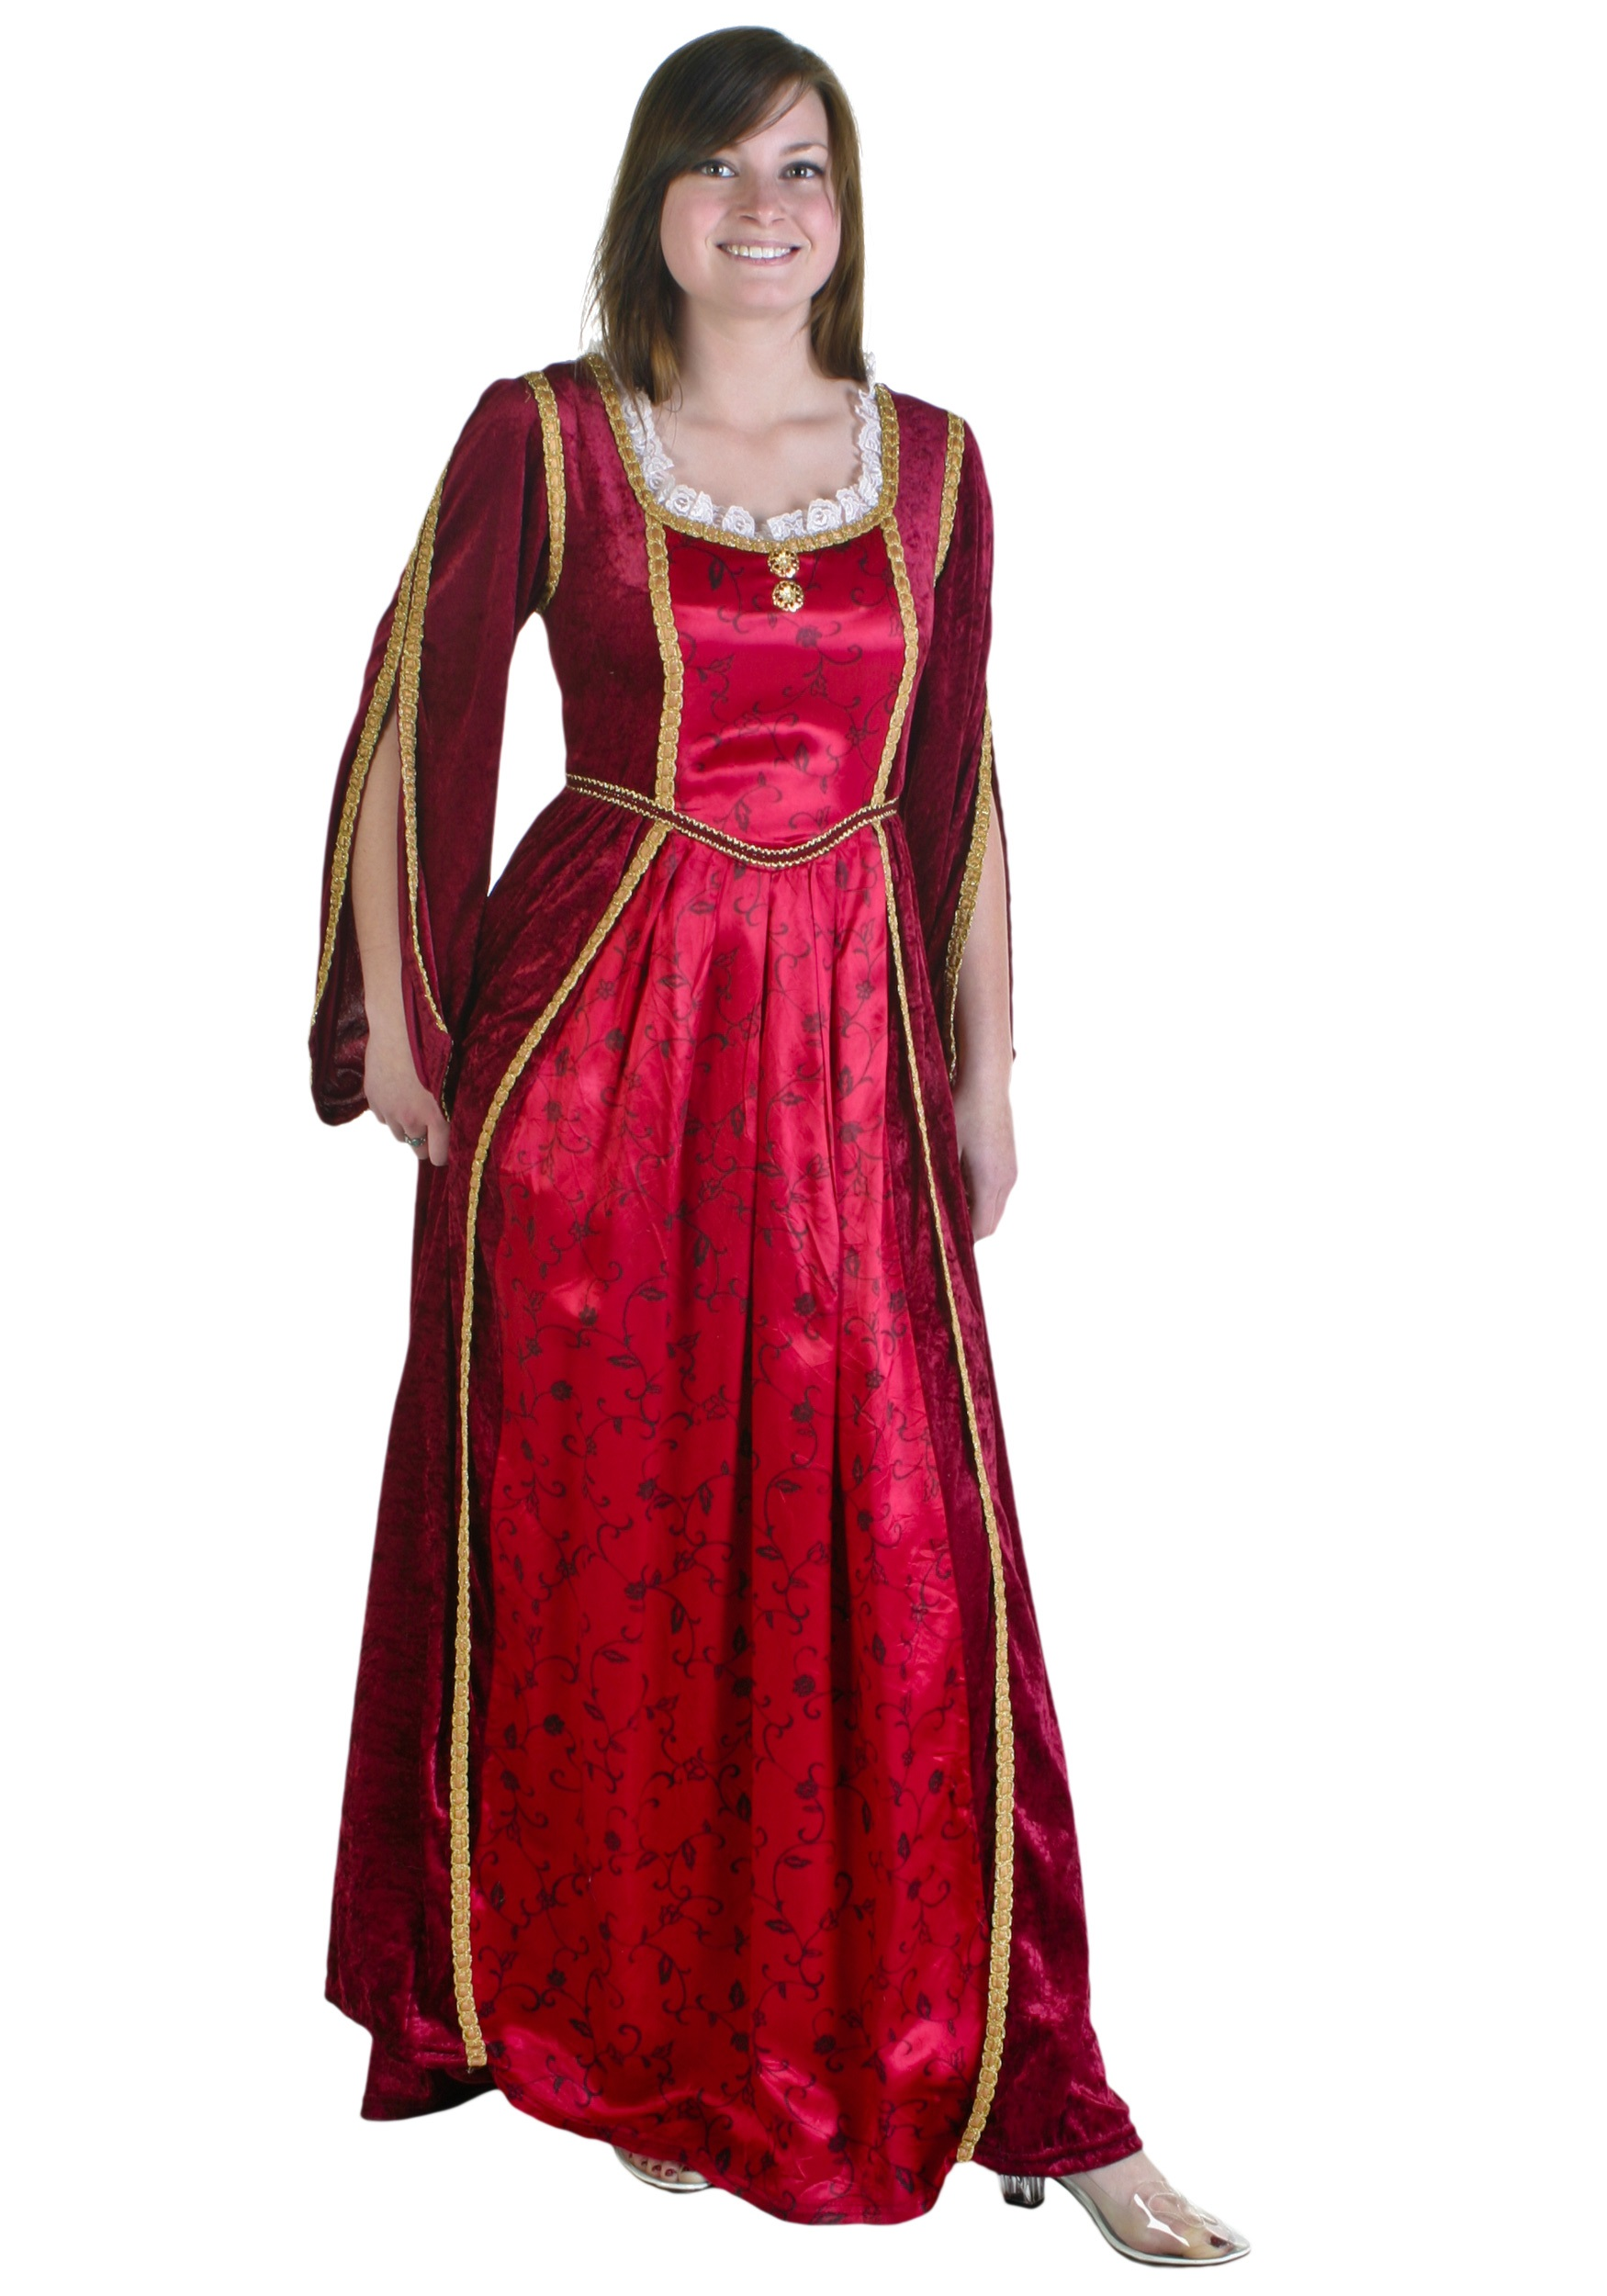 Medieval Outfits for Women, Womens Medieval Dresses and Renaissance Dresses